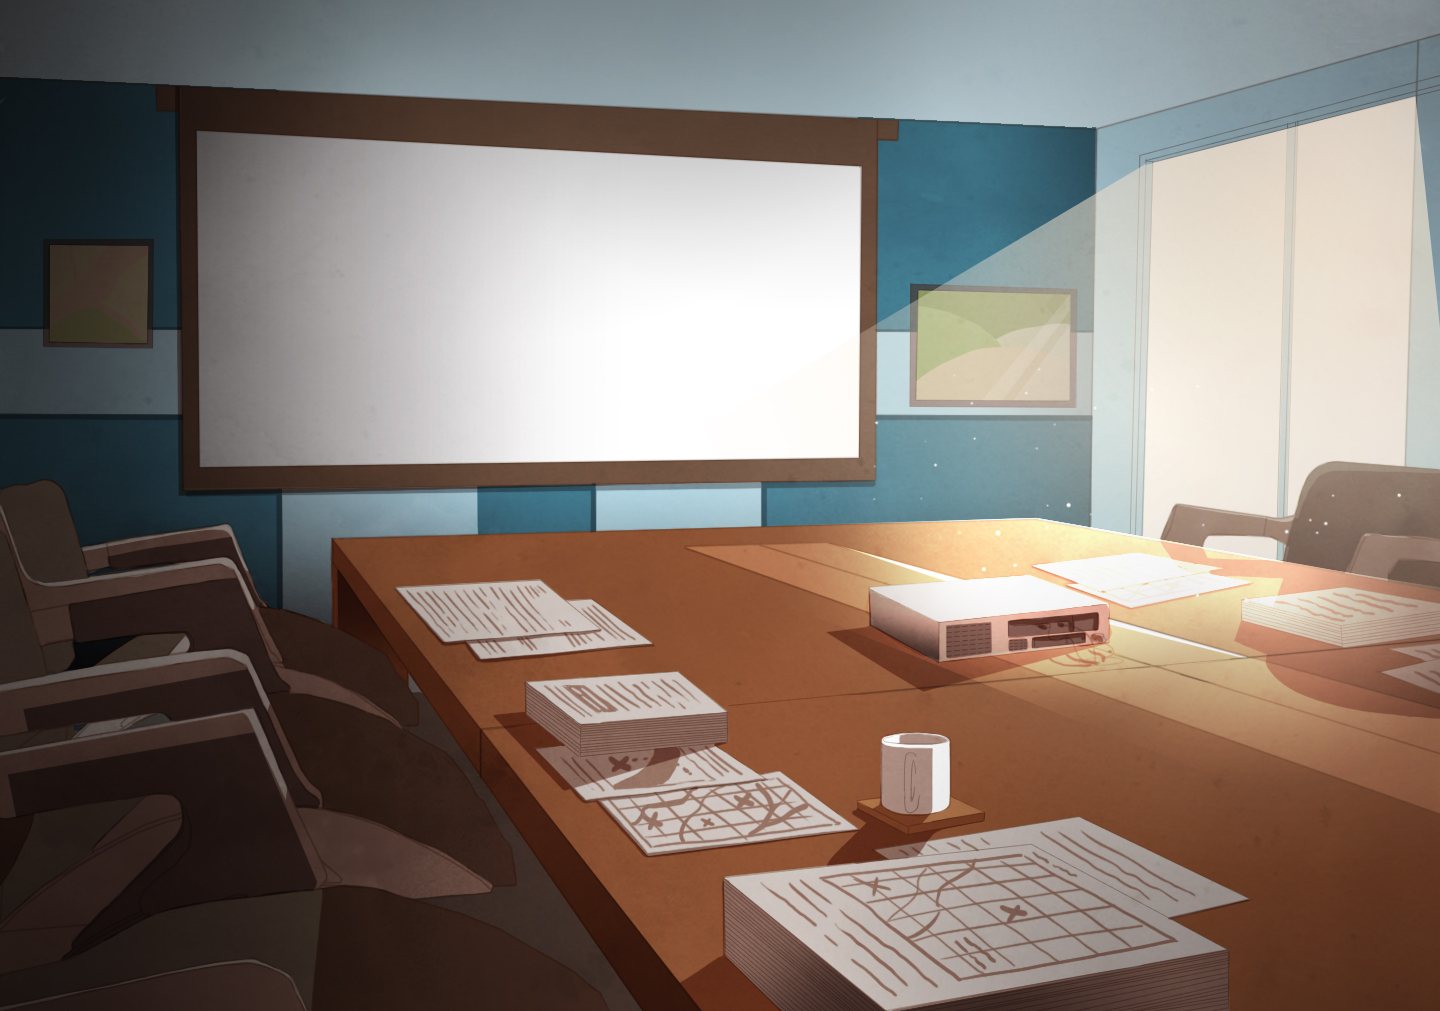 Background 1: Meeting Room